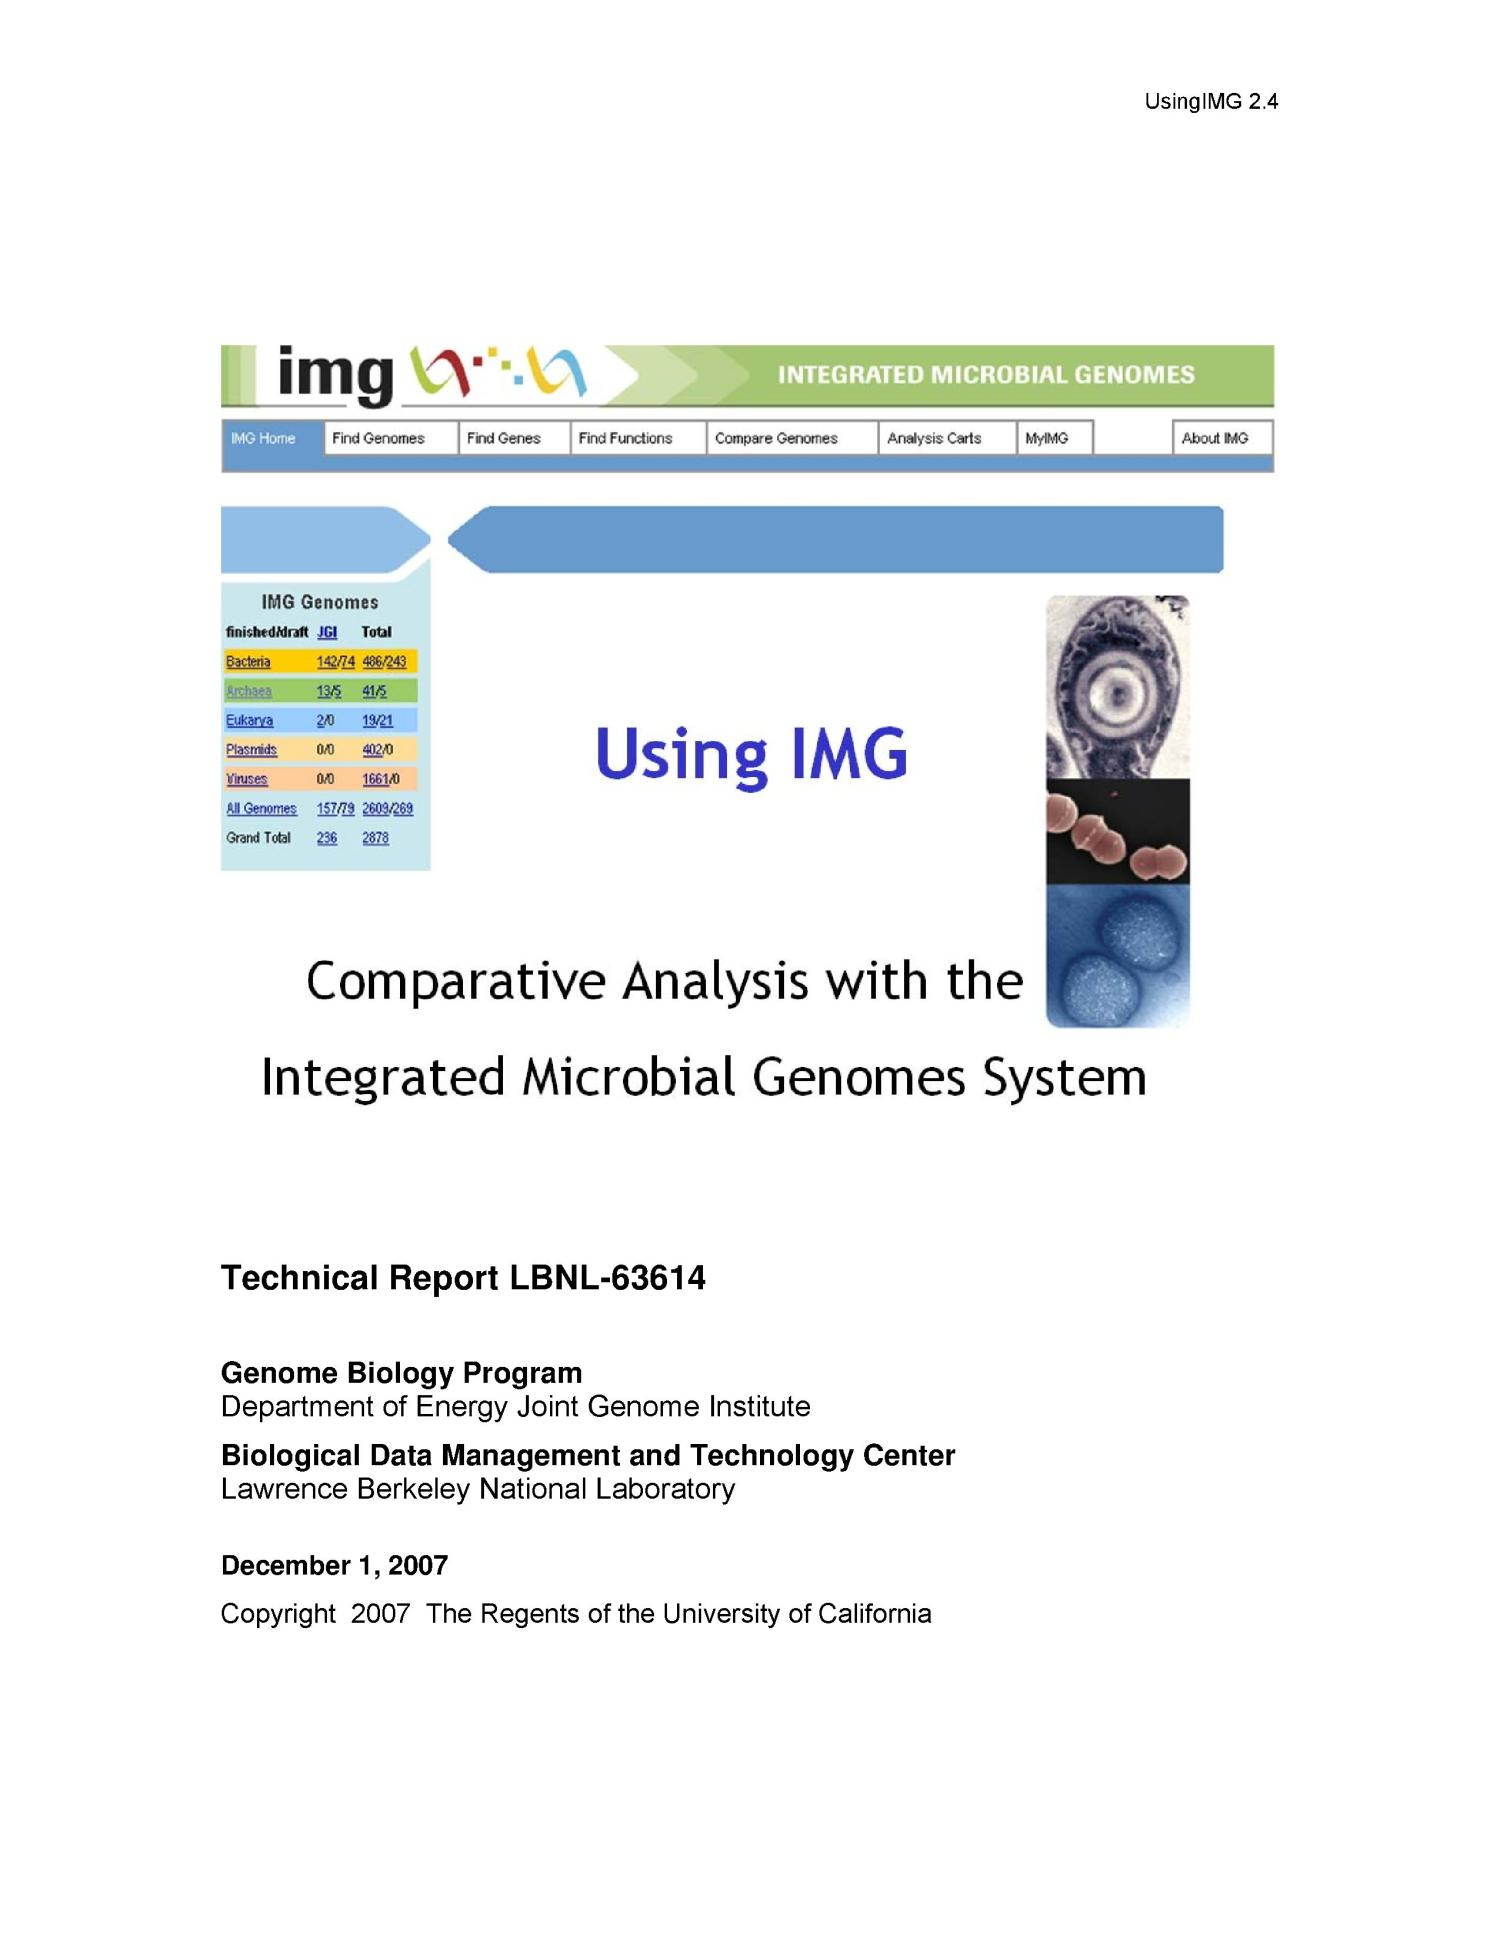 Using IMG: Comparative Analysis with the Integrated Microbial Genomes System                                                                                                      [Sequence #]: 1 of 57